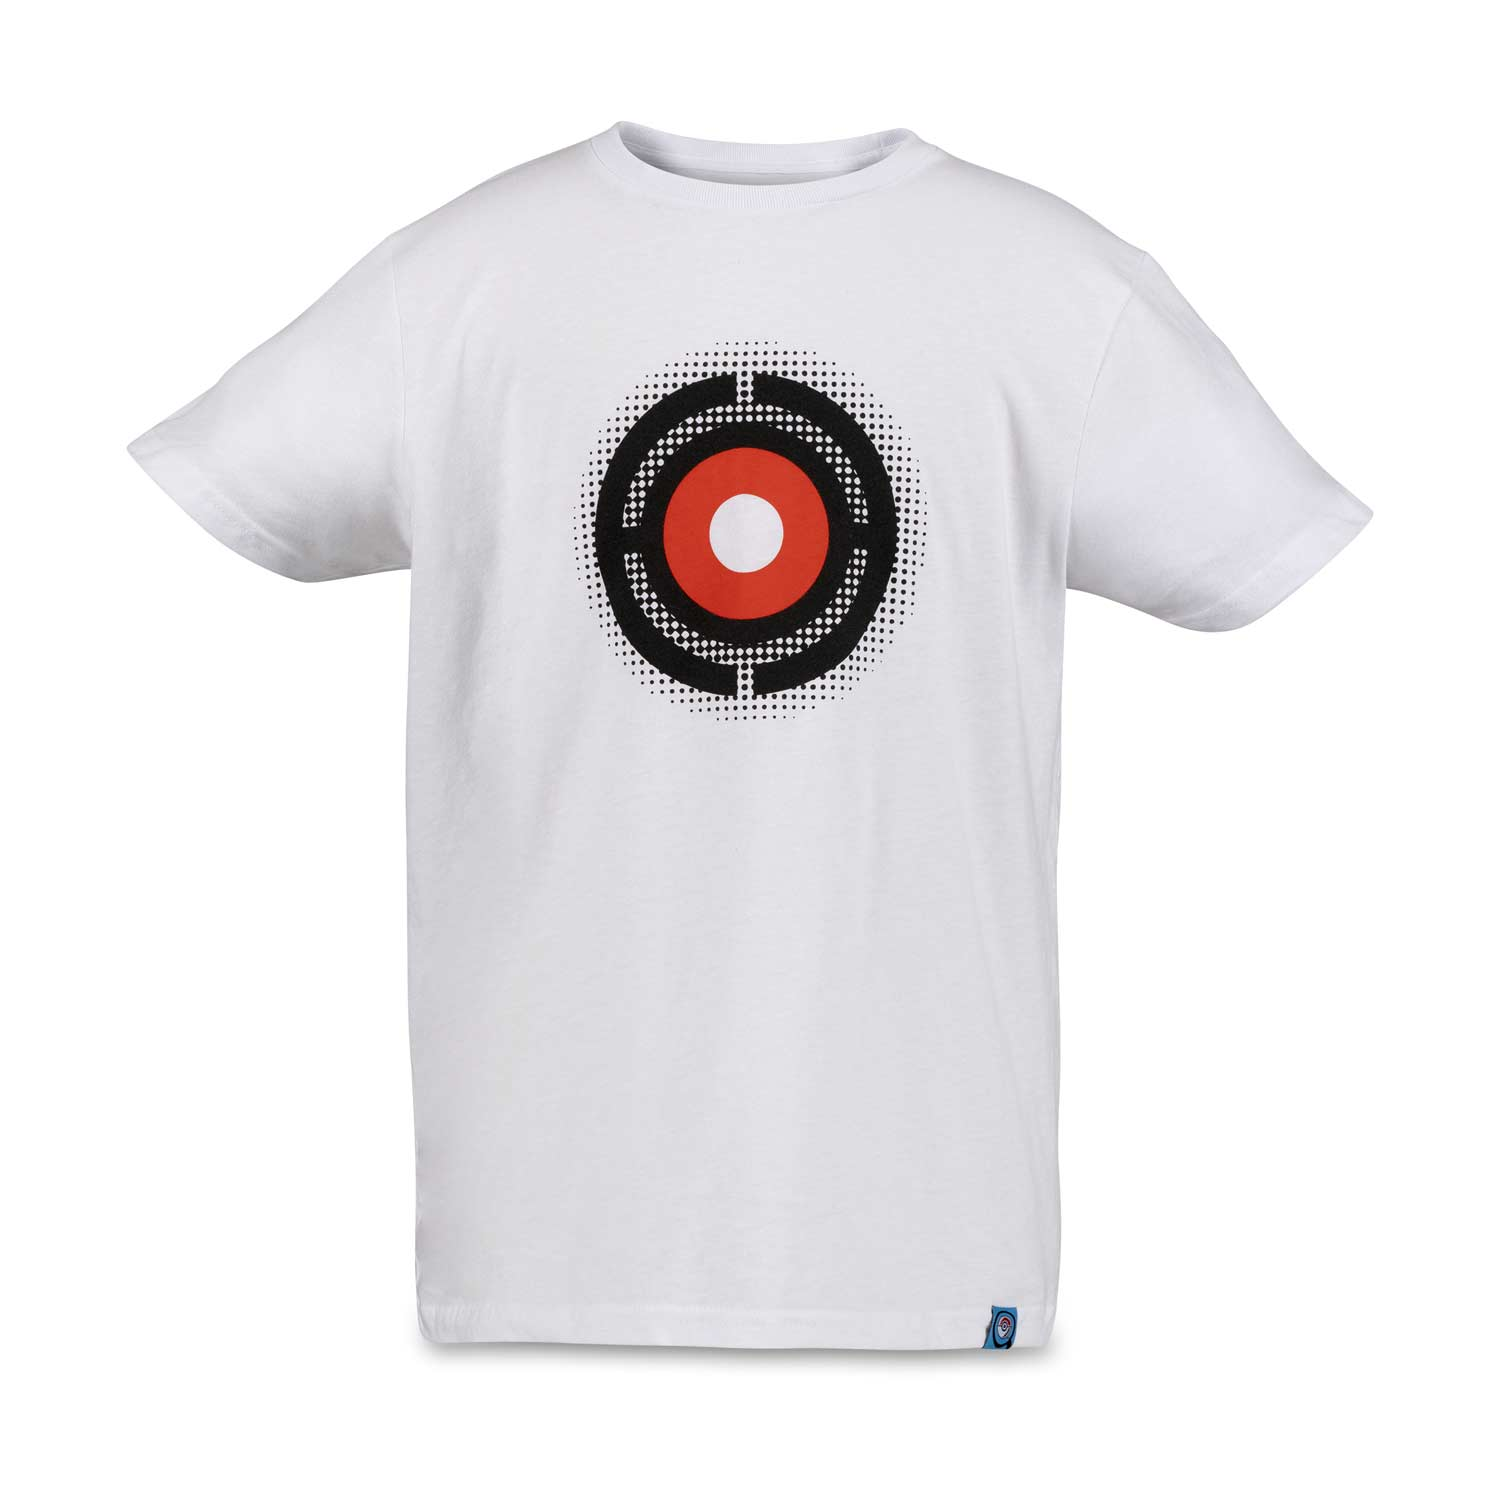 91c37741 Image for POKÉMON Detective Pikachu Unown H Fitted Crew Neck T-Shirt -  Youth from